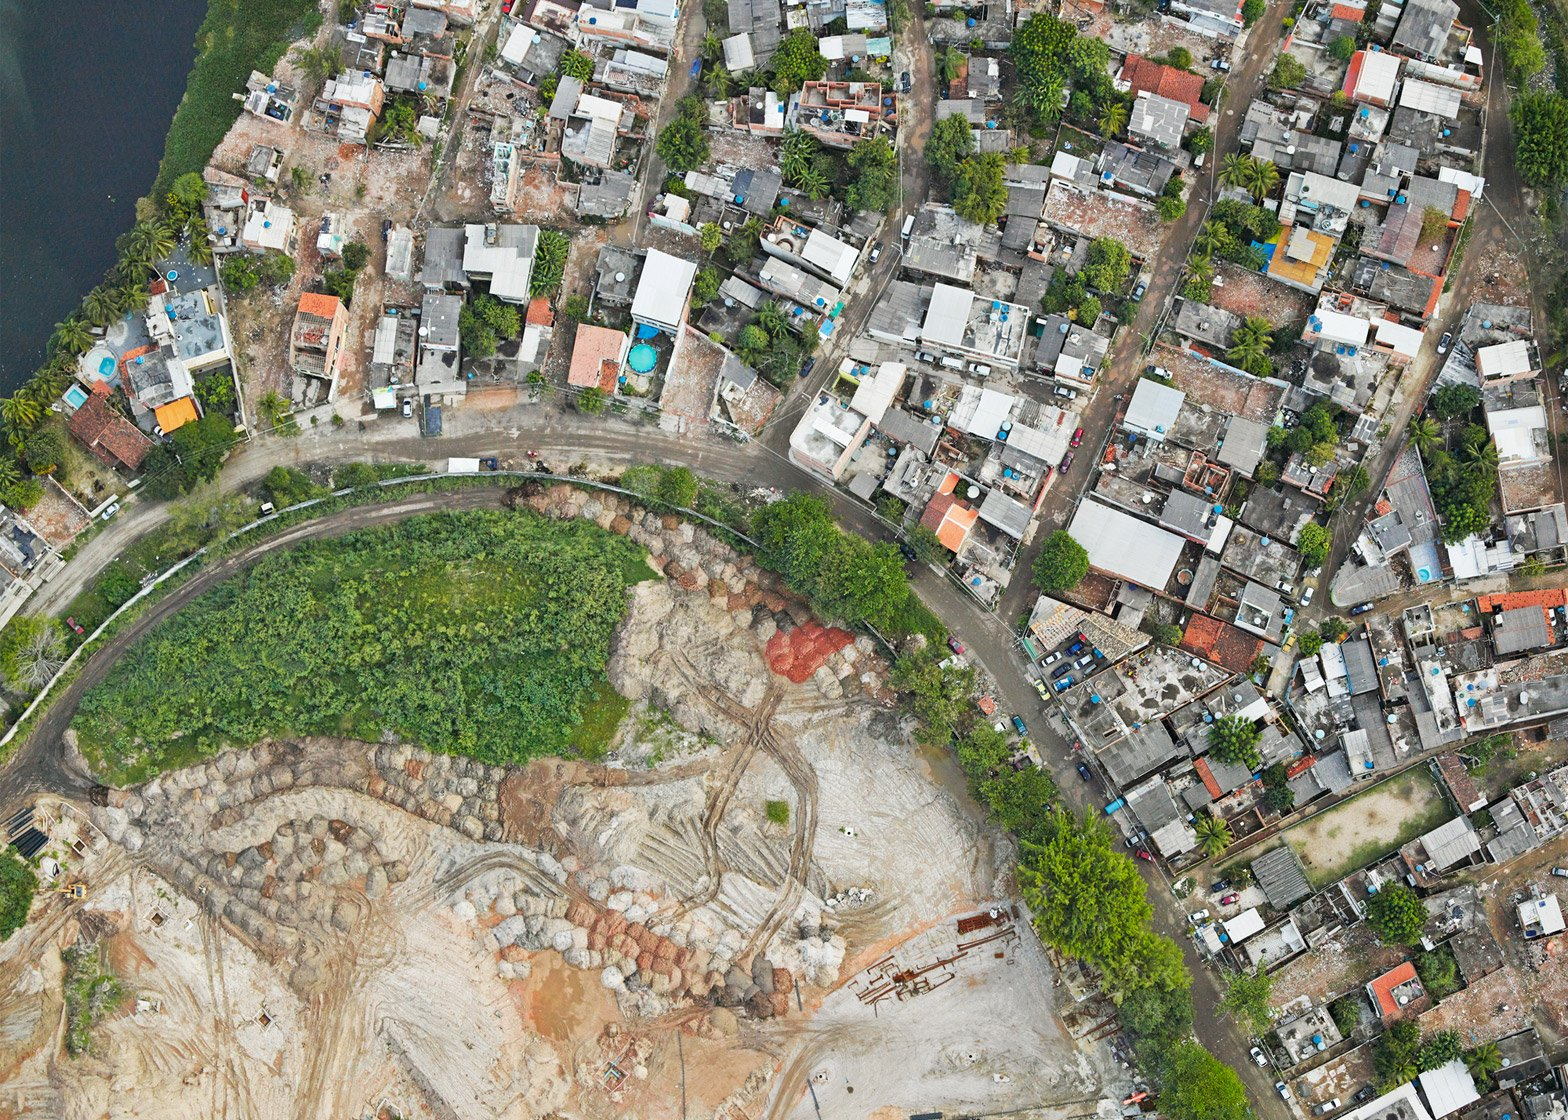 Aerial Photos of Rio de Janeiro ahead of the Games by Giles Price